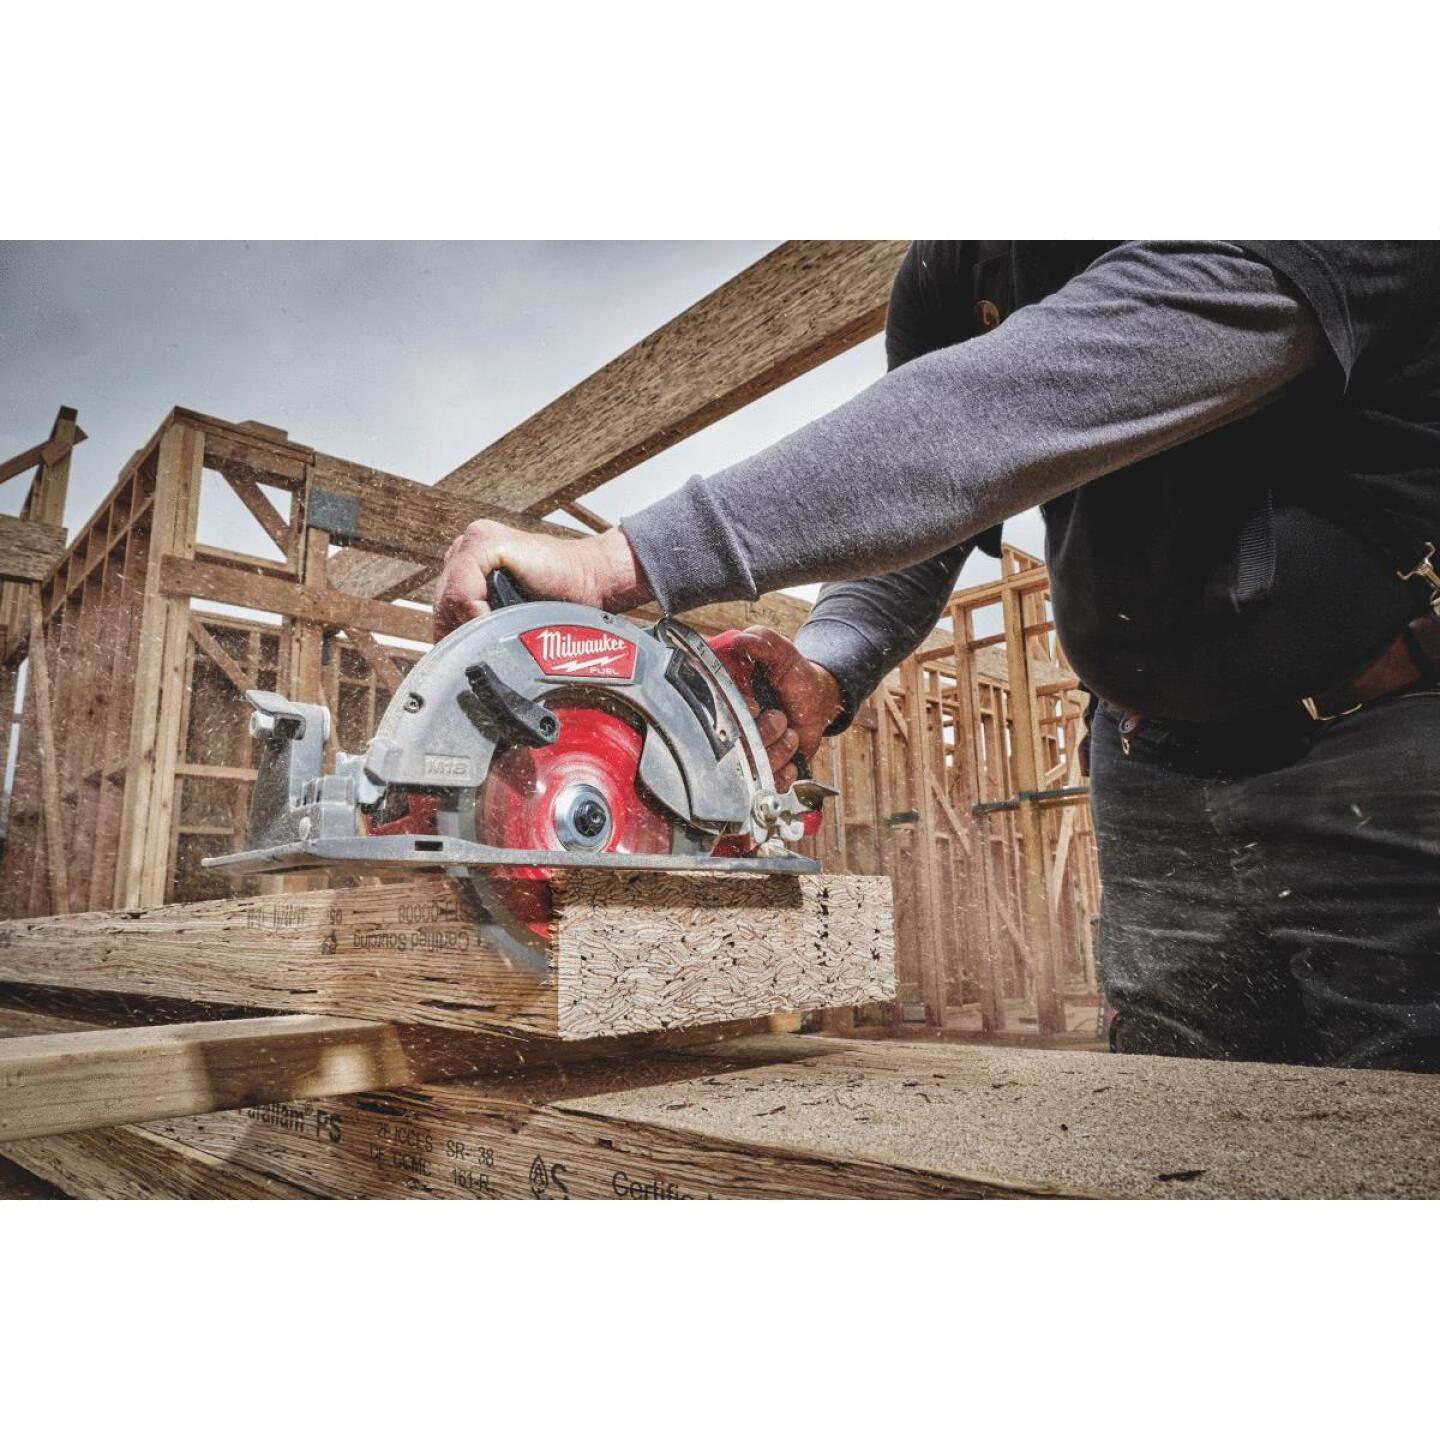 Milwaukee M18 FUEL 18 Volt Lithium-Ion Brushless 7-1/4 In. Cordless Circular Saw w/Rear Handle Kit Image 1